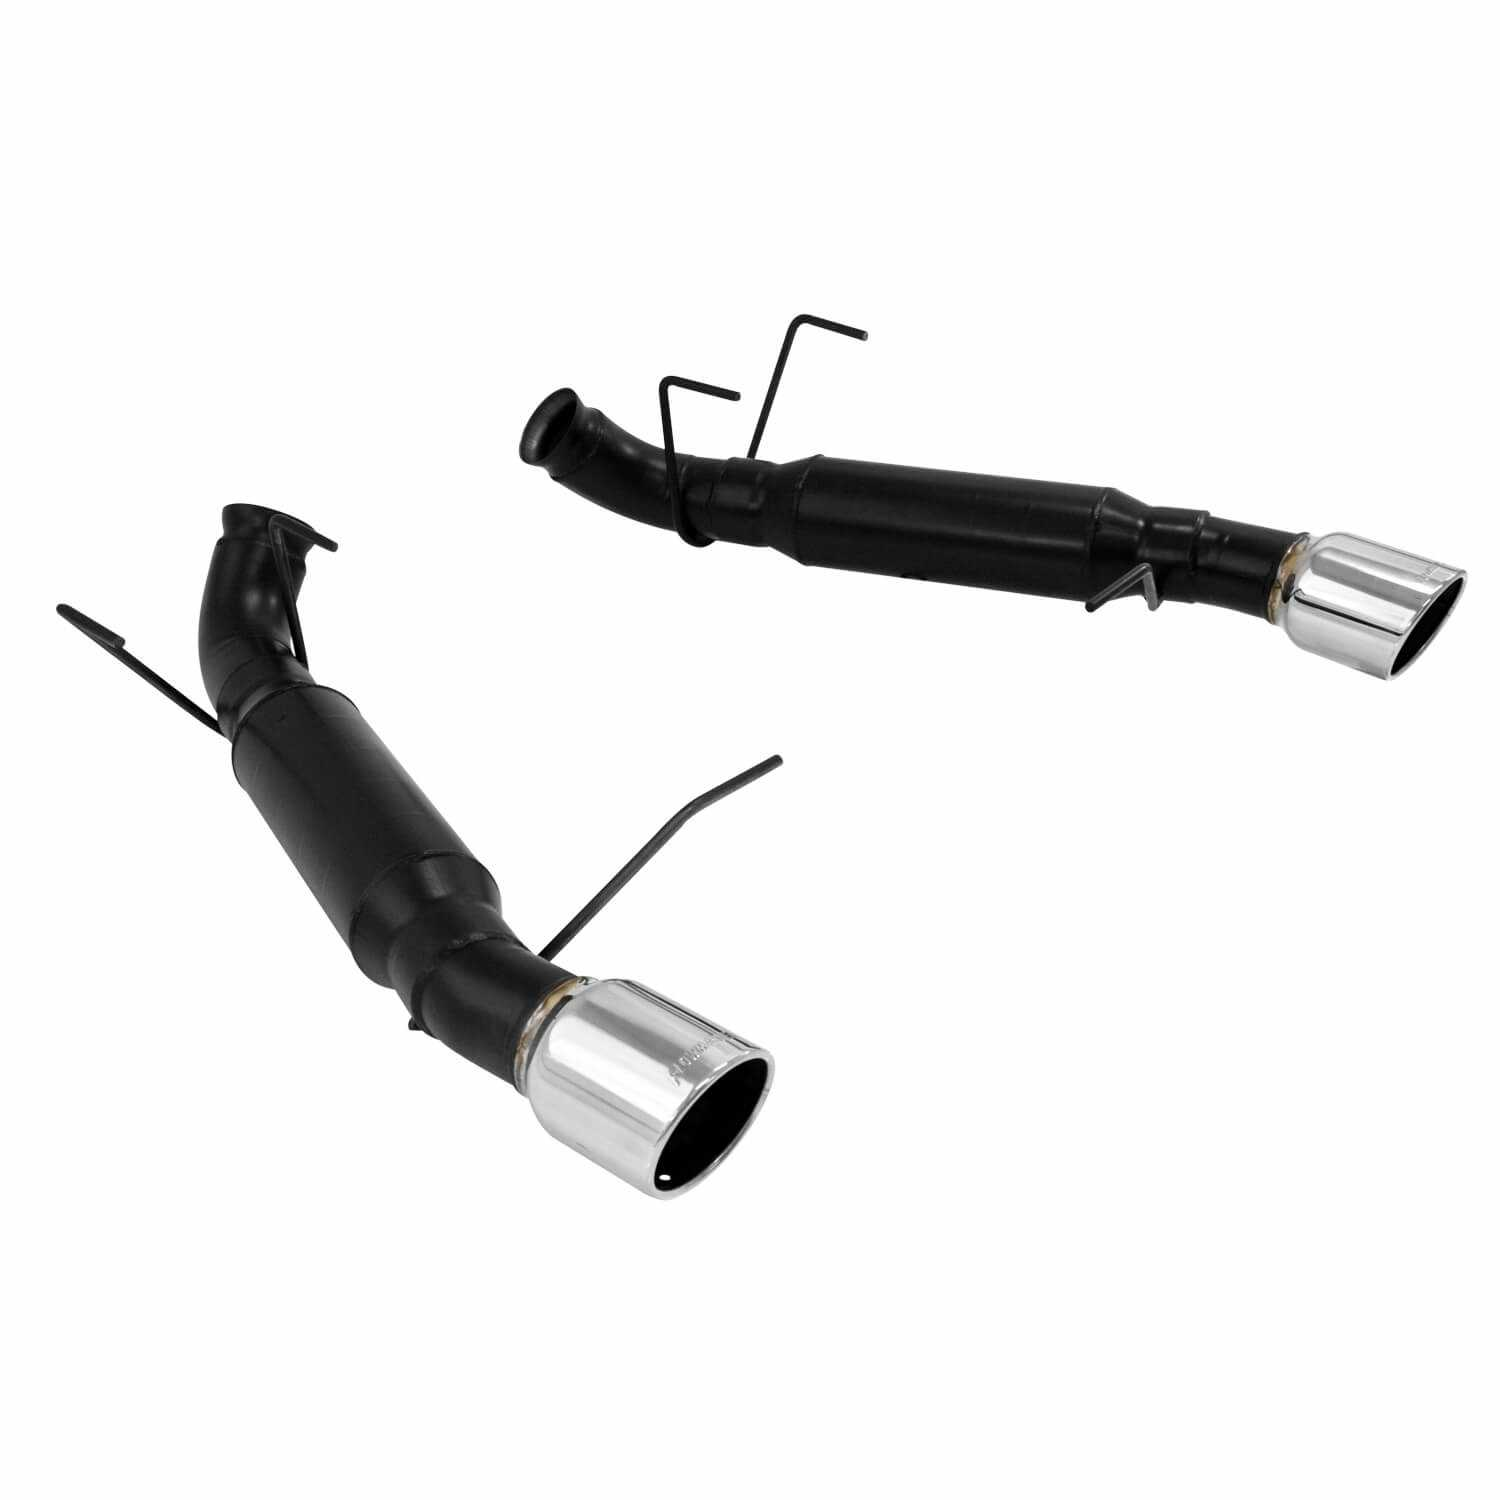 817516 Flowmaster Outlaw Series™ Axle Back Exhaust System